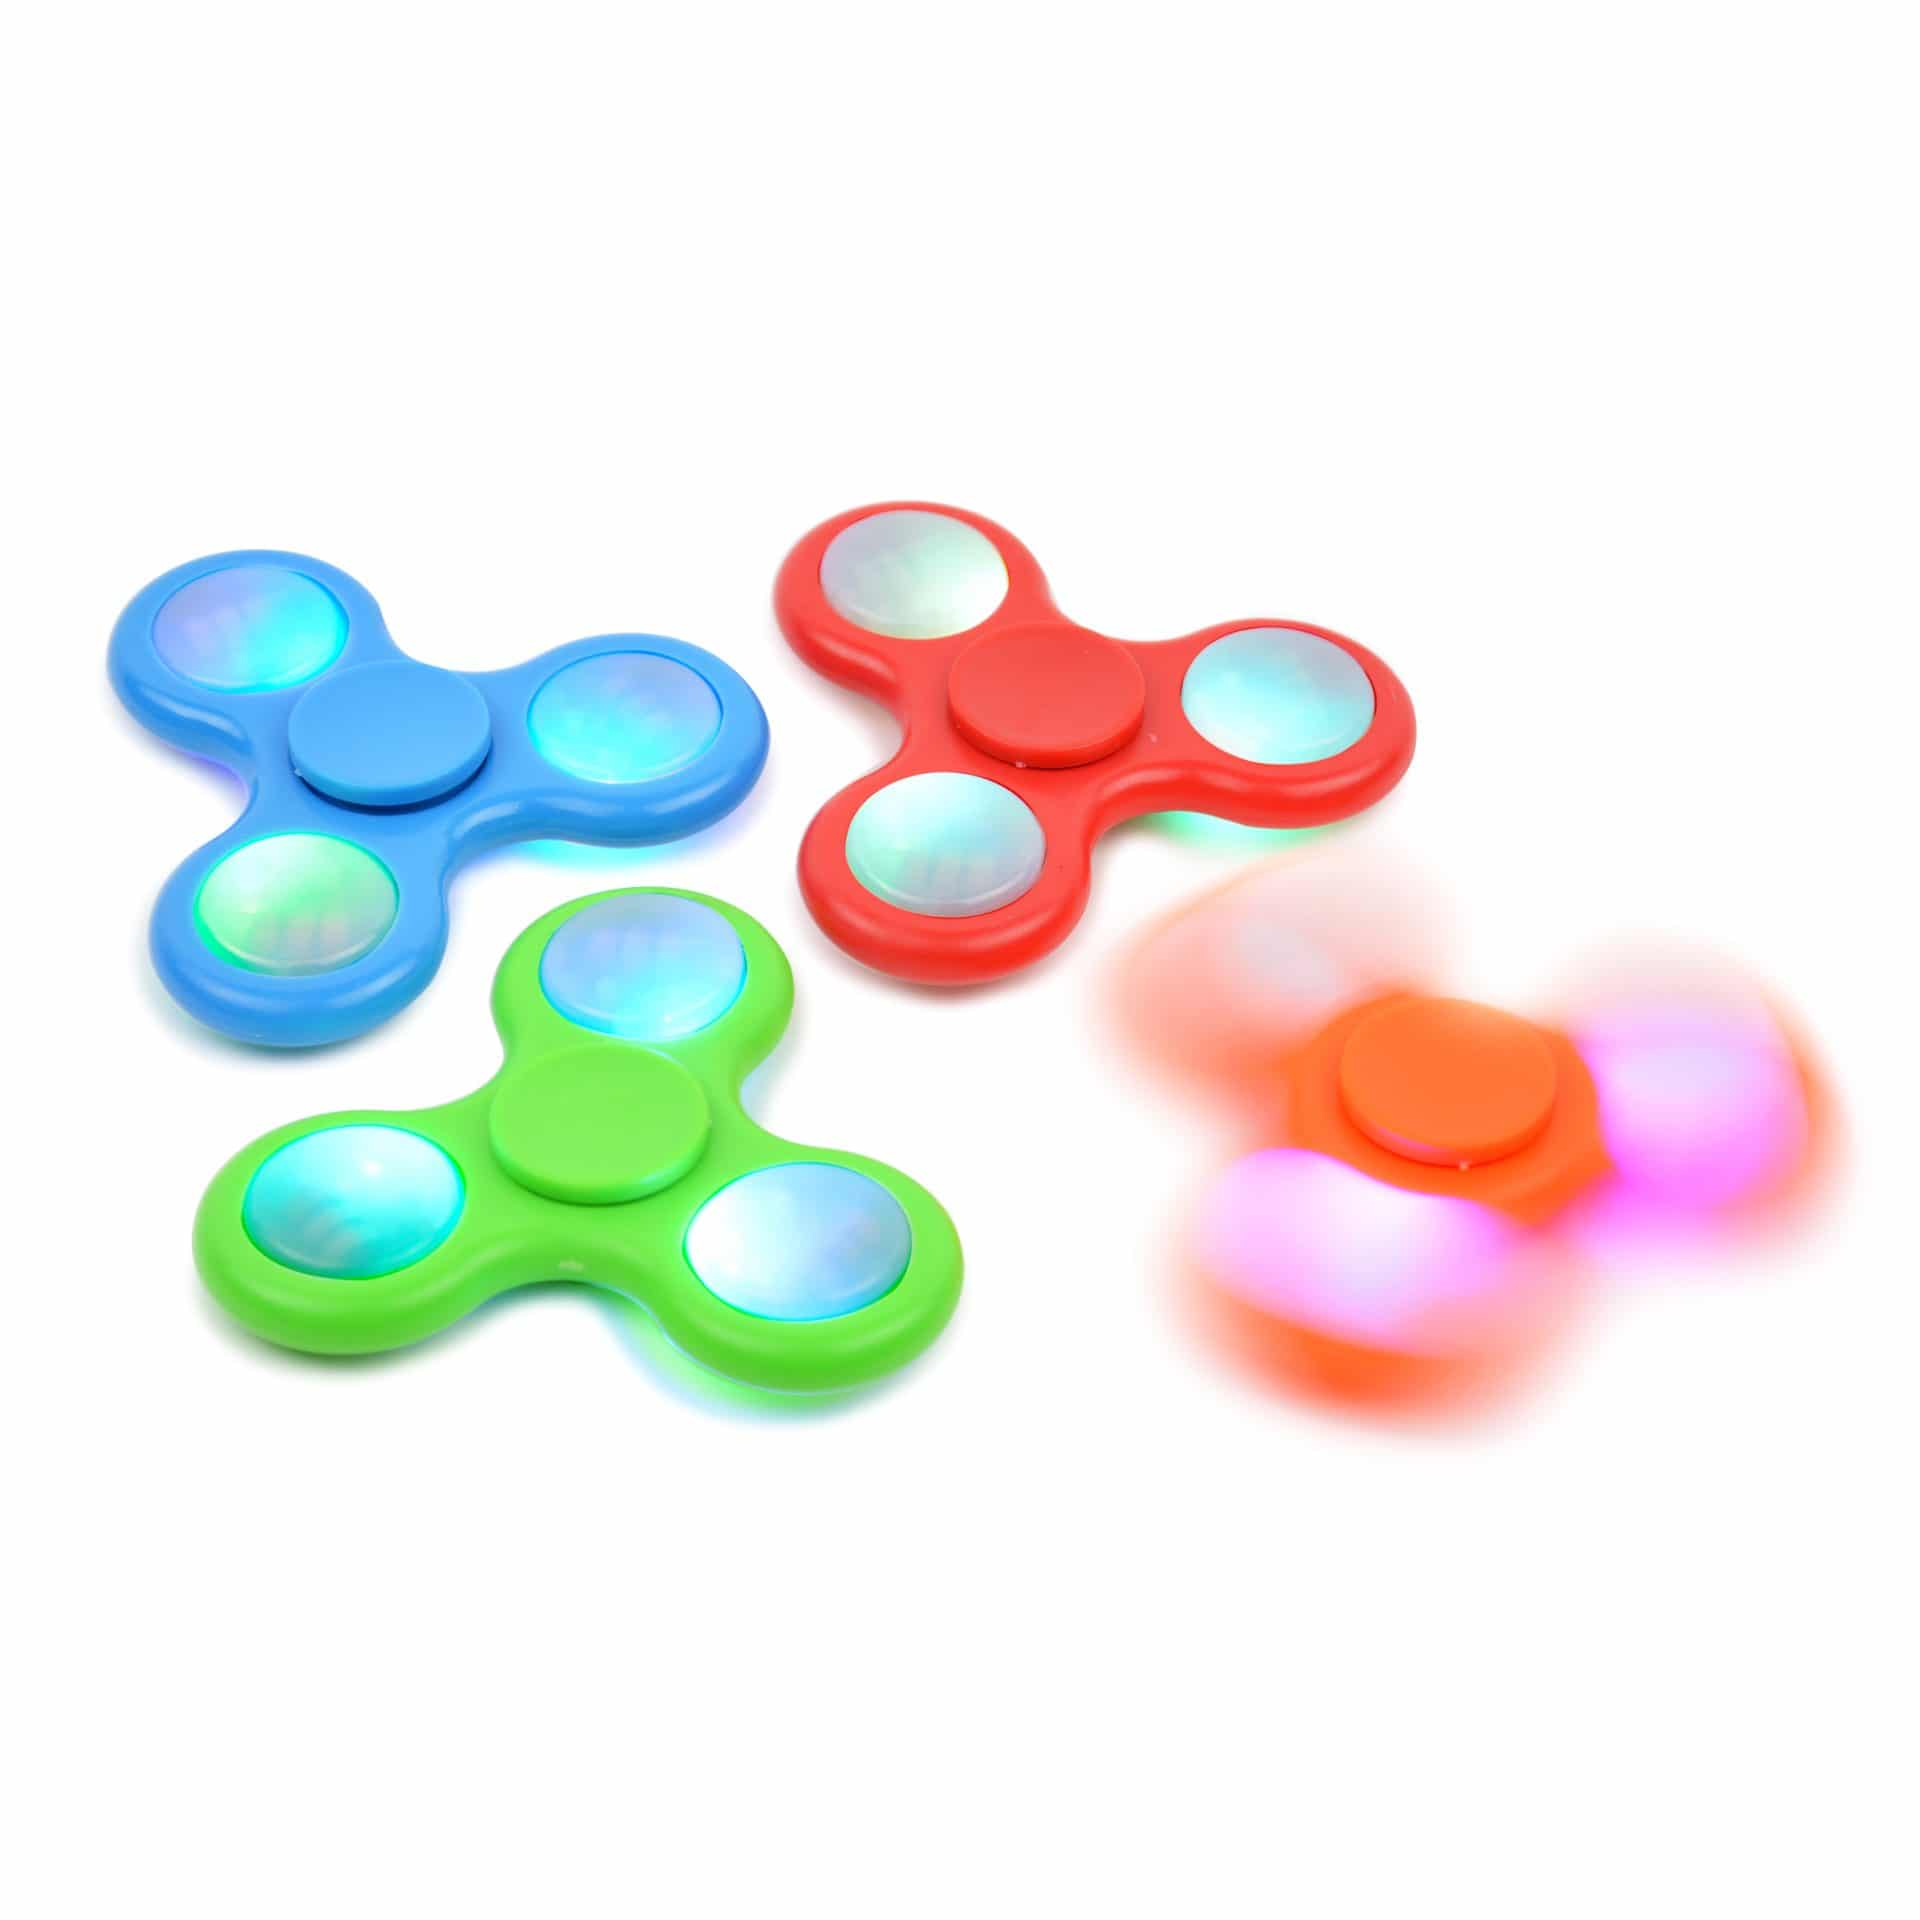 LED Fidget Spinner toy